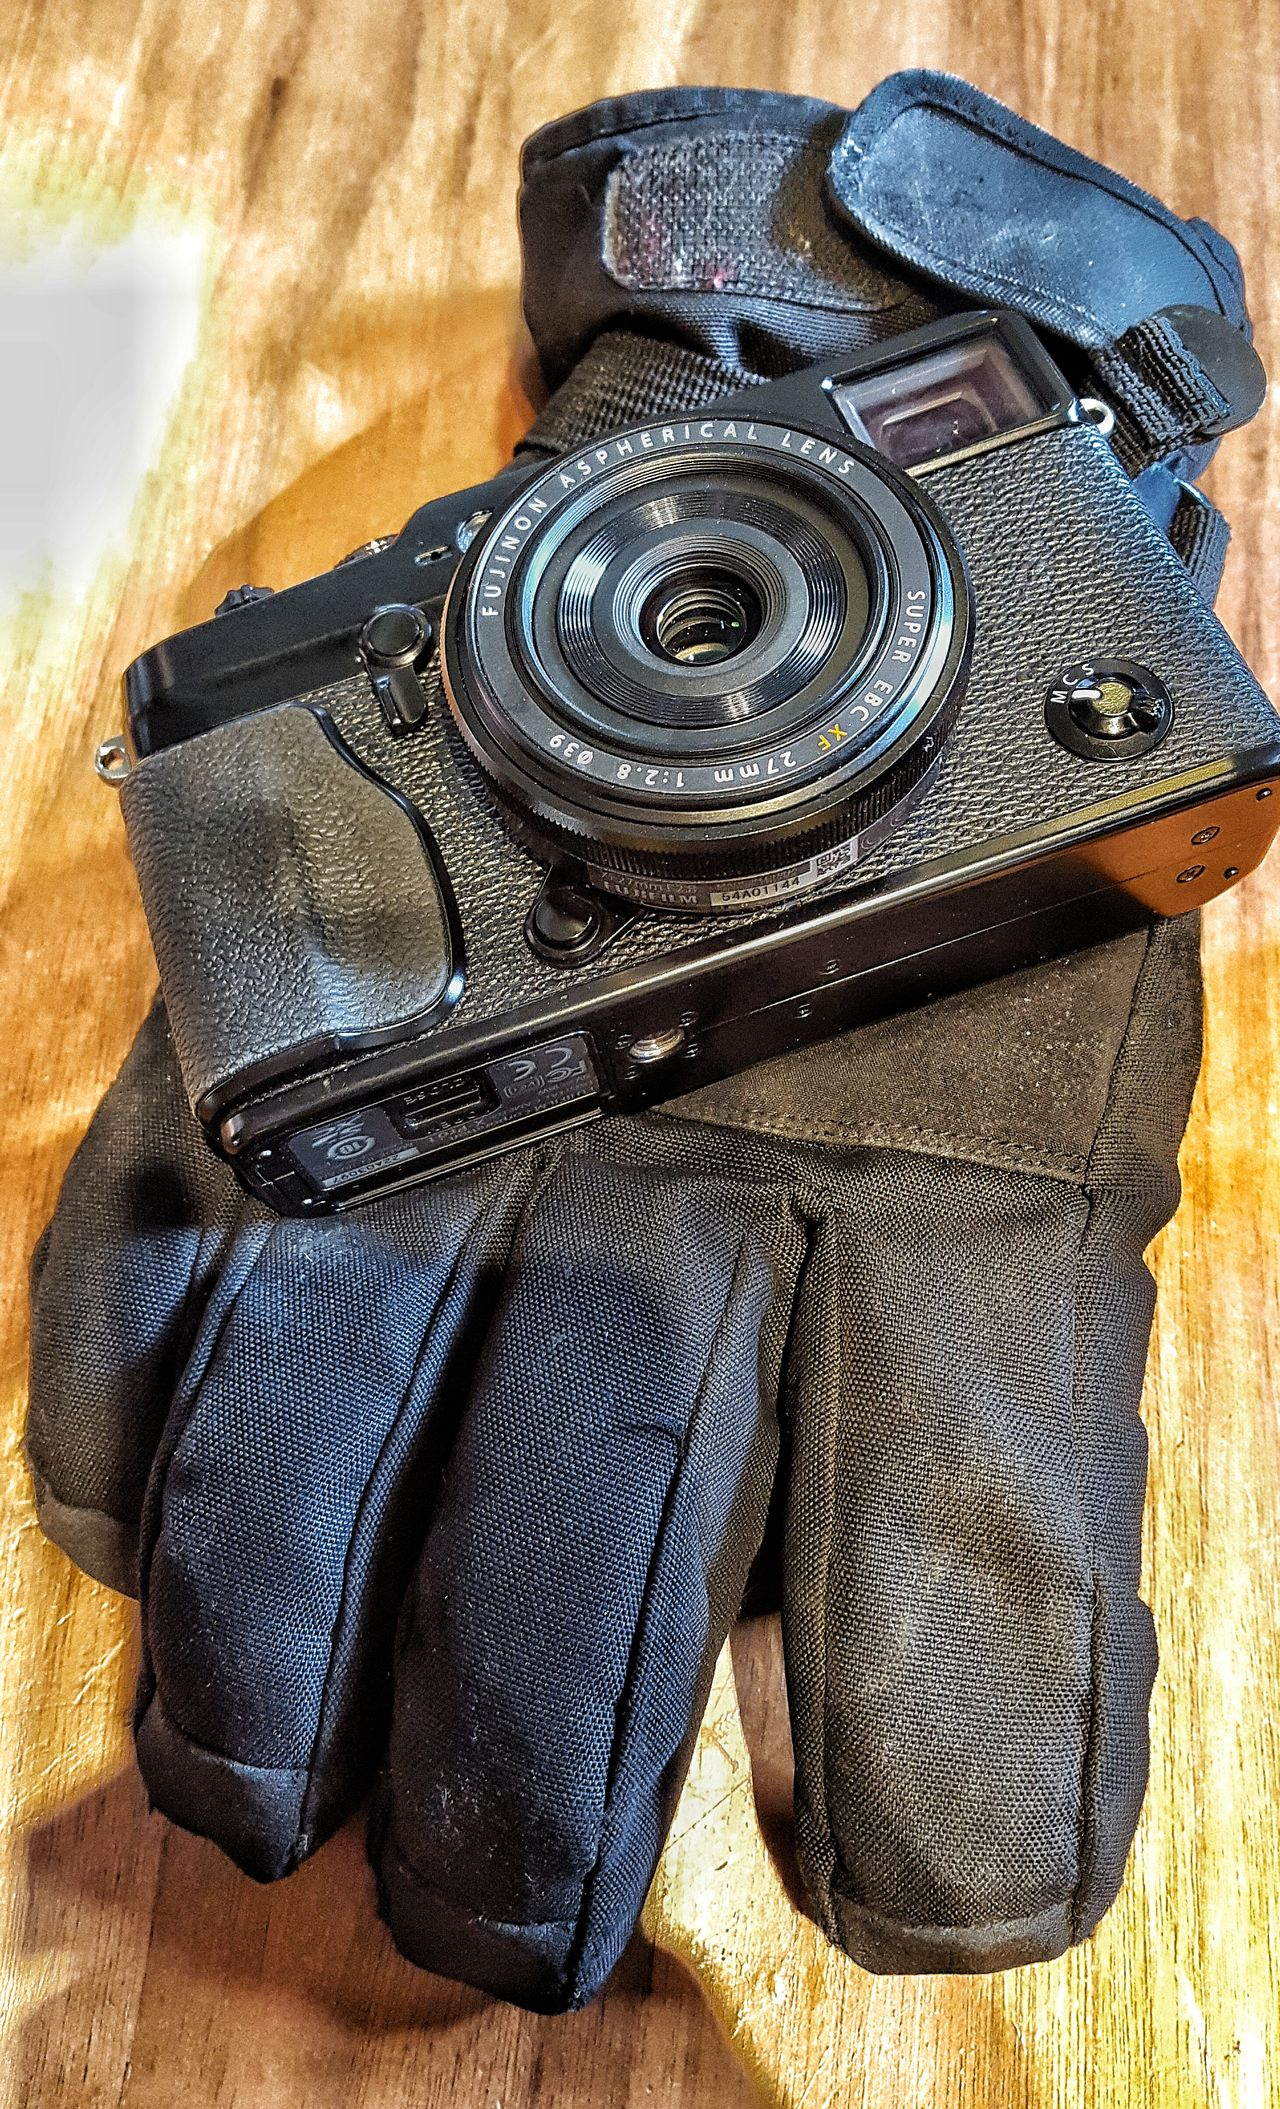 Tools of the trade Arrangement Black Camera Camera Lens Close-up Collection Directly Above Glove Indoors  Metal And Fabric Mirrorless Camera No People Photography Themes Retro Camera Side By Side Textures And Surfaces Winter Glove Wooden Texture